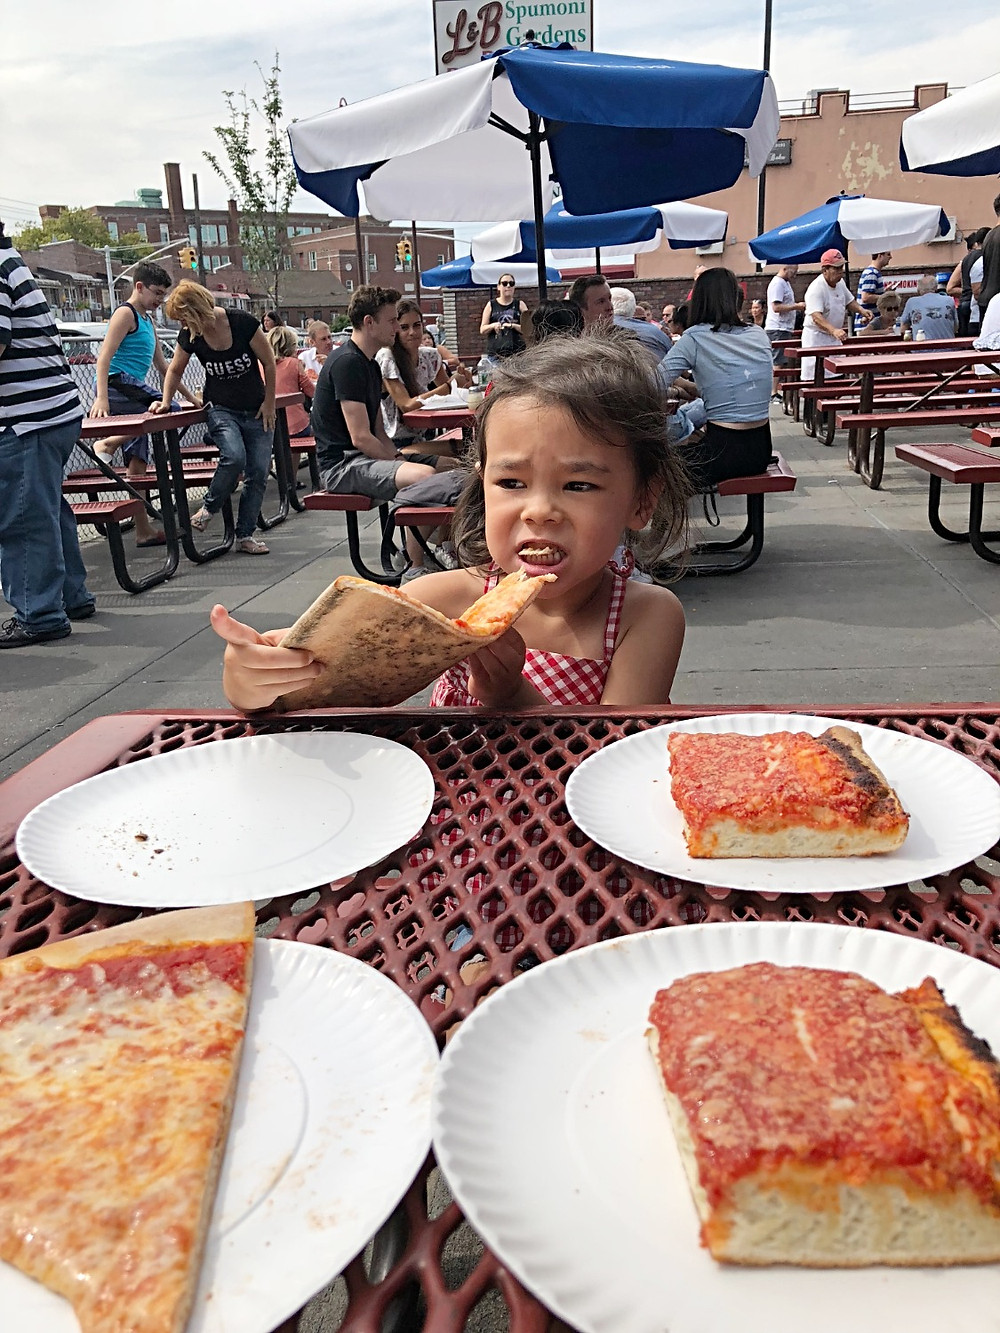 L & B Spumoni Gardens, best pizza in NYC, Btooklyn pizza, spumoni ice cream